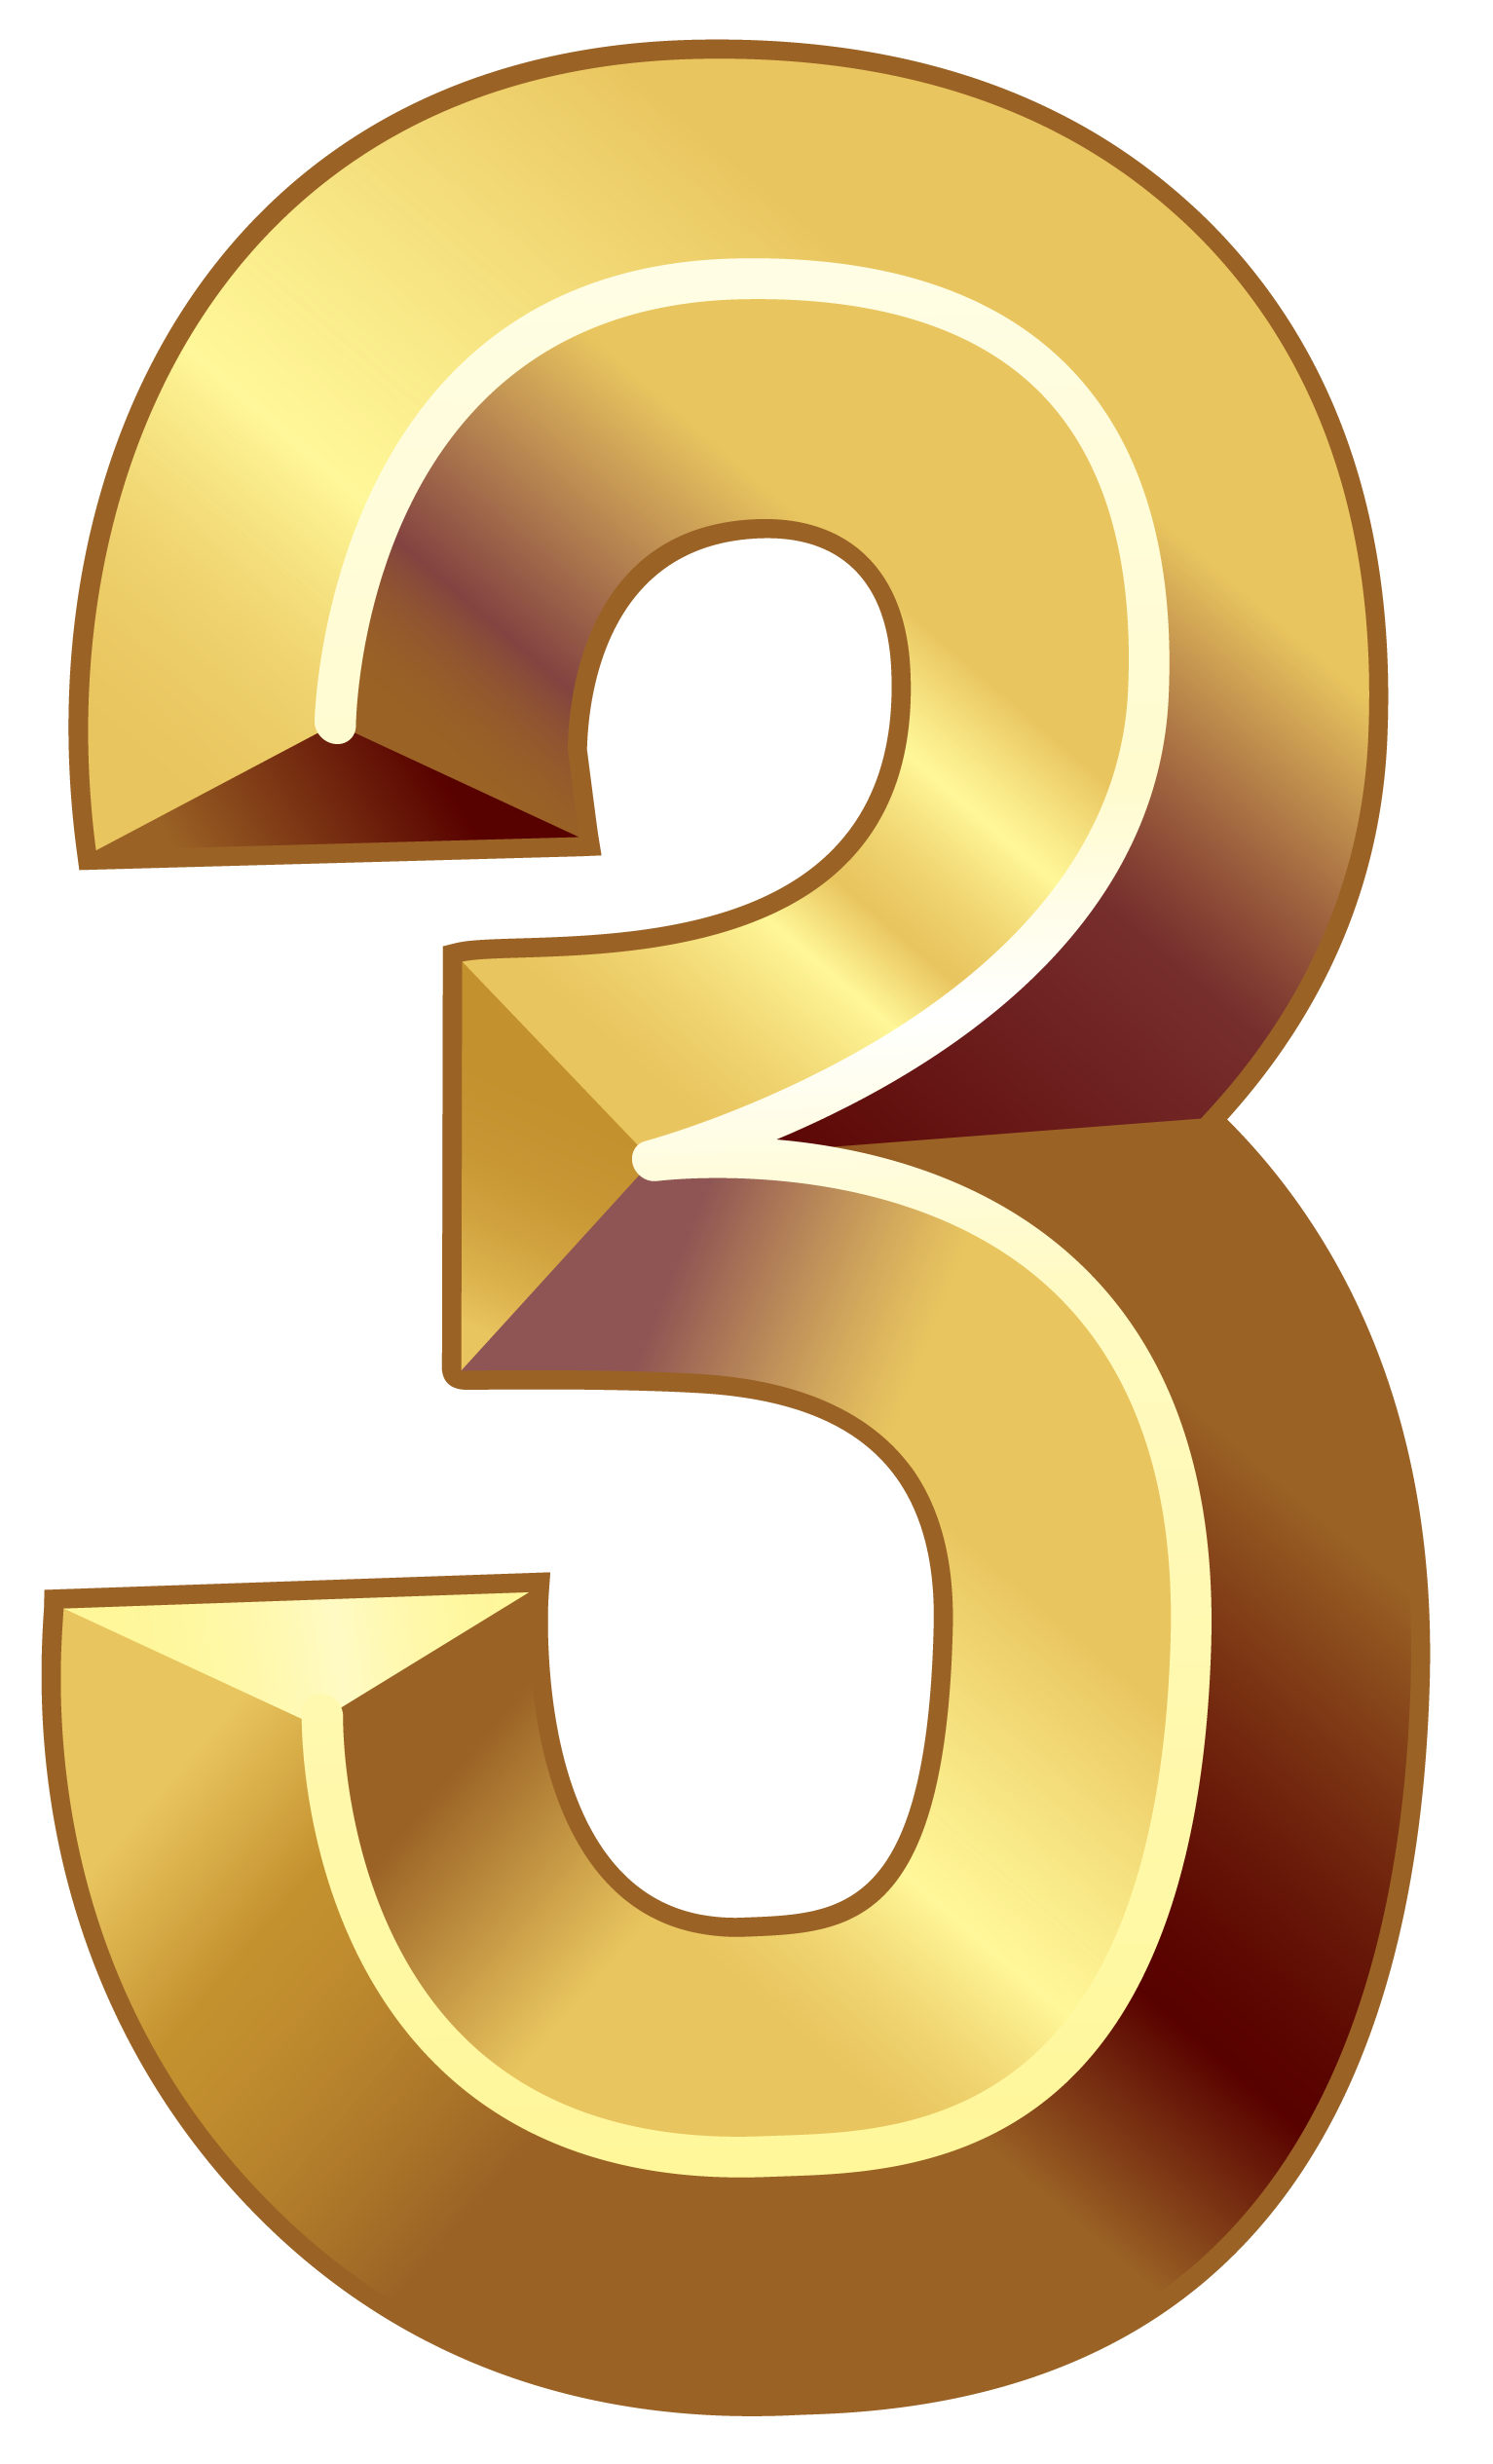 Number clipart decorative. Gold three png image